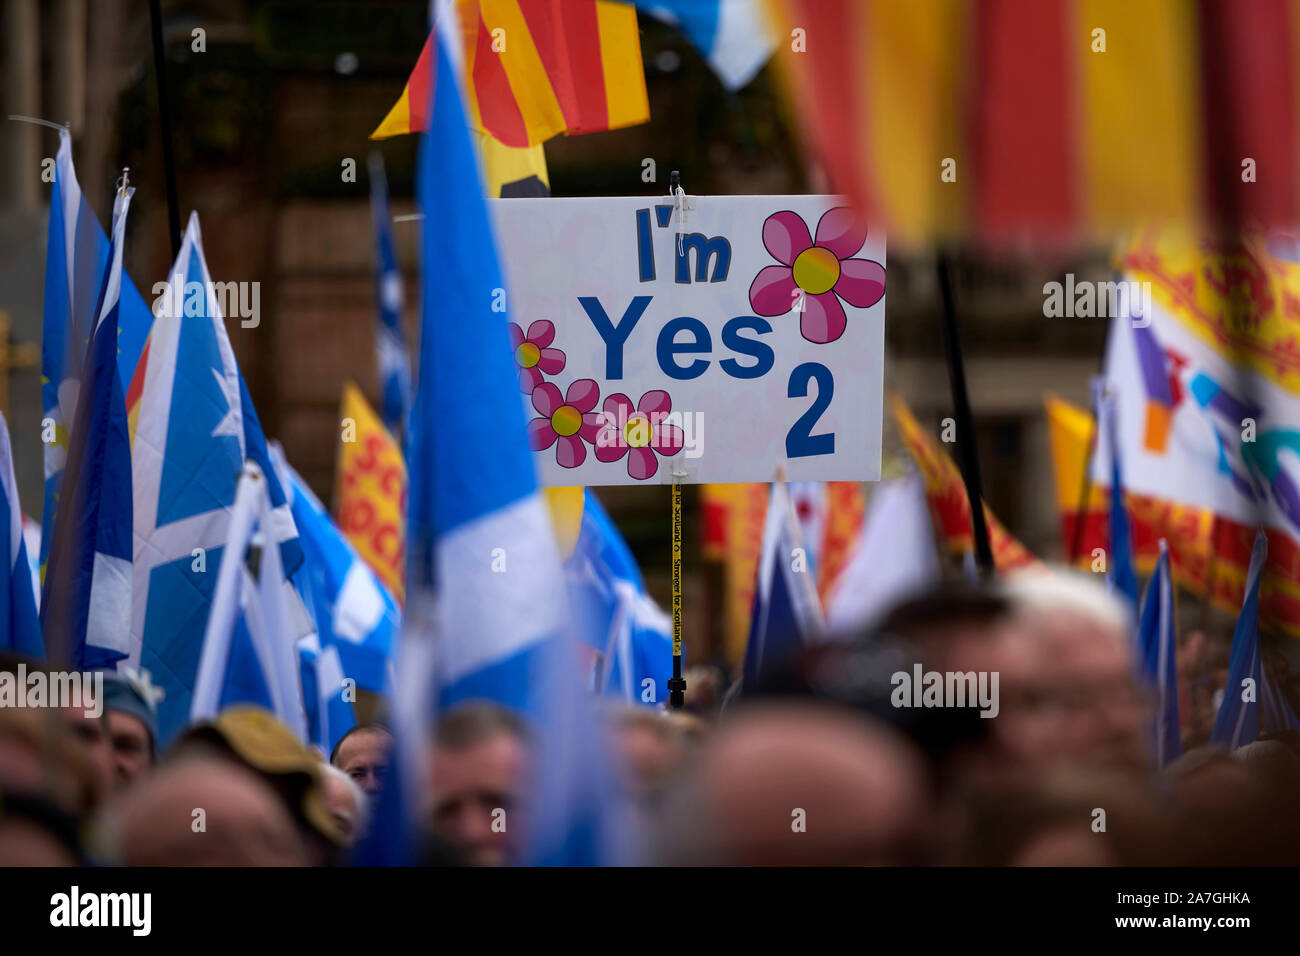 Glasgow, Scotland, UK. 02nd Nov 2019. A rally in support of Scottish Independence takes place in George Square. credit steven scott taylor / alamy live news Stock Photo